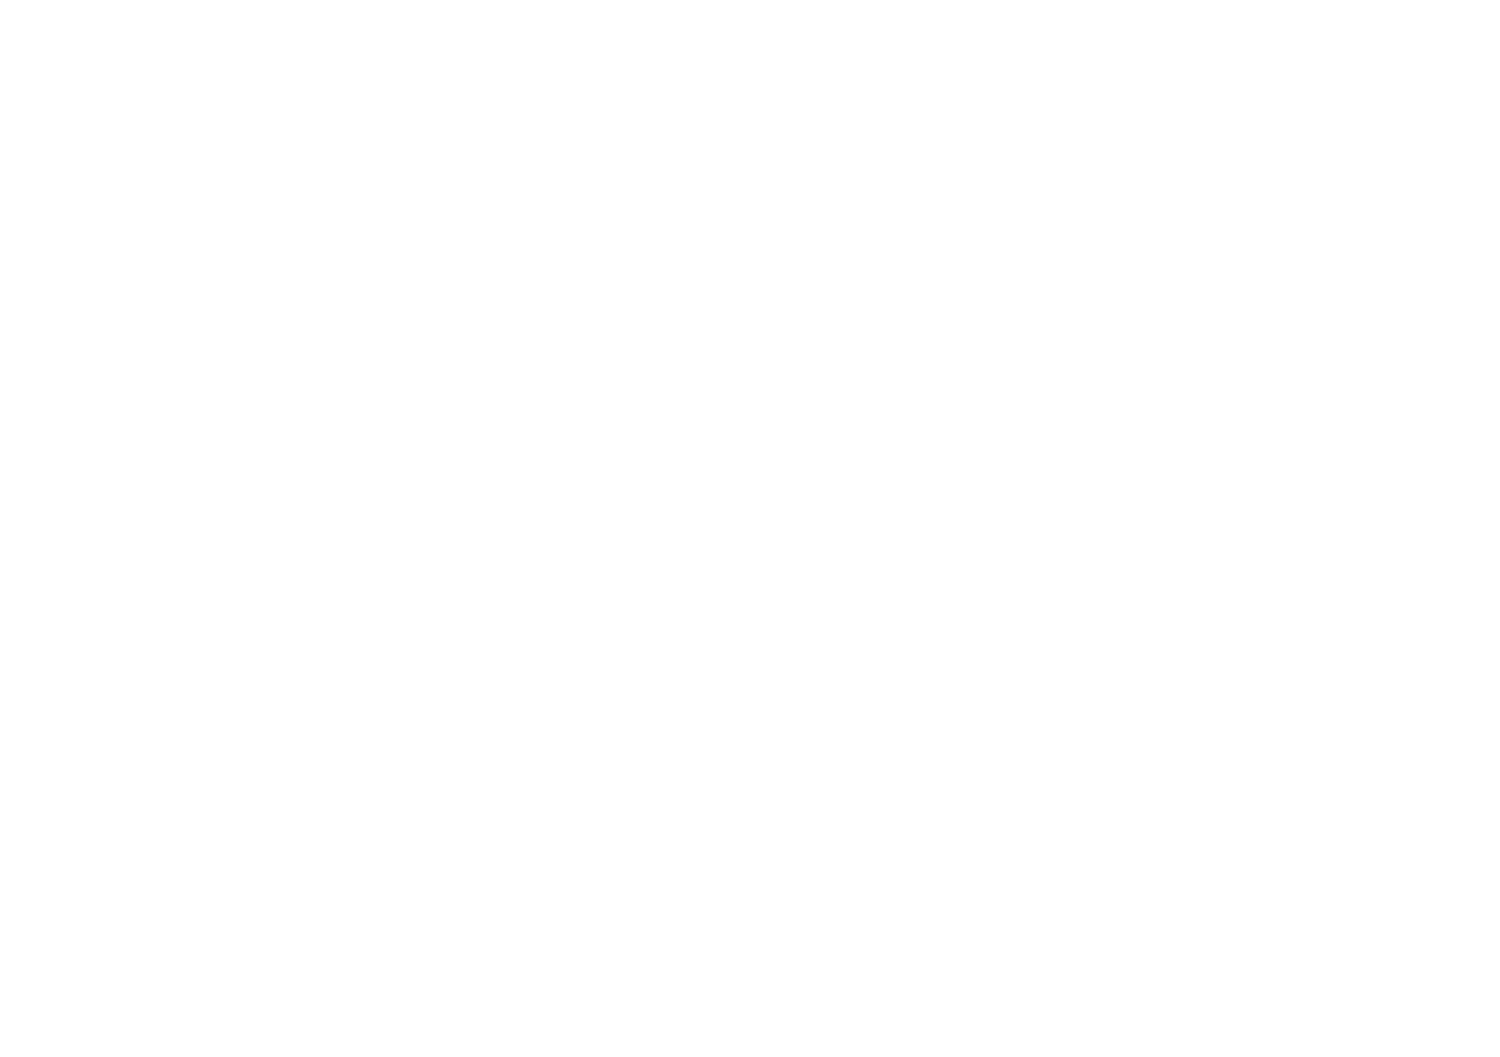 THE BAKERY PHOTO COLLECTIVE